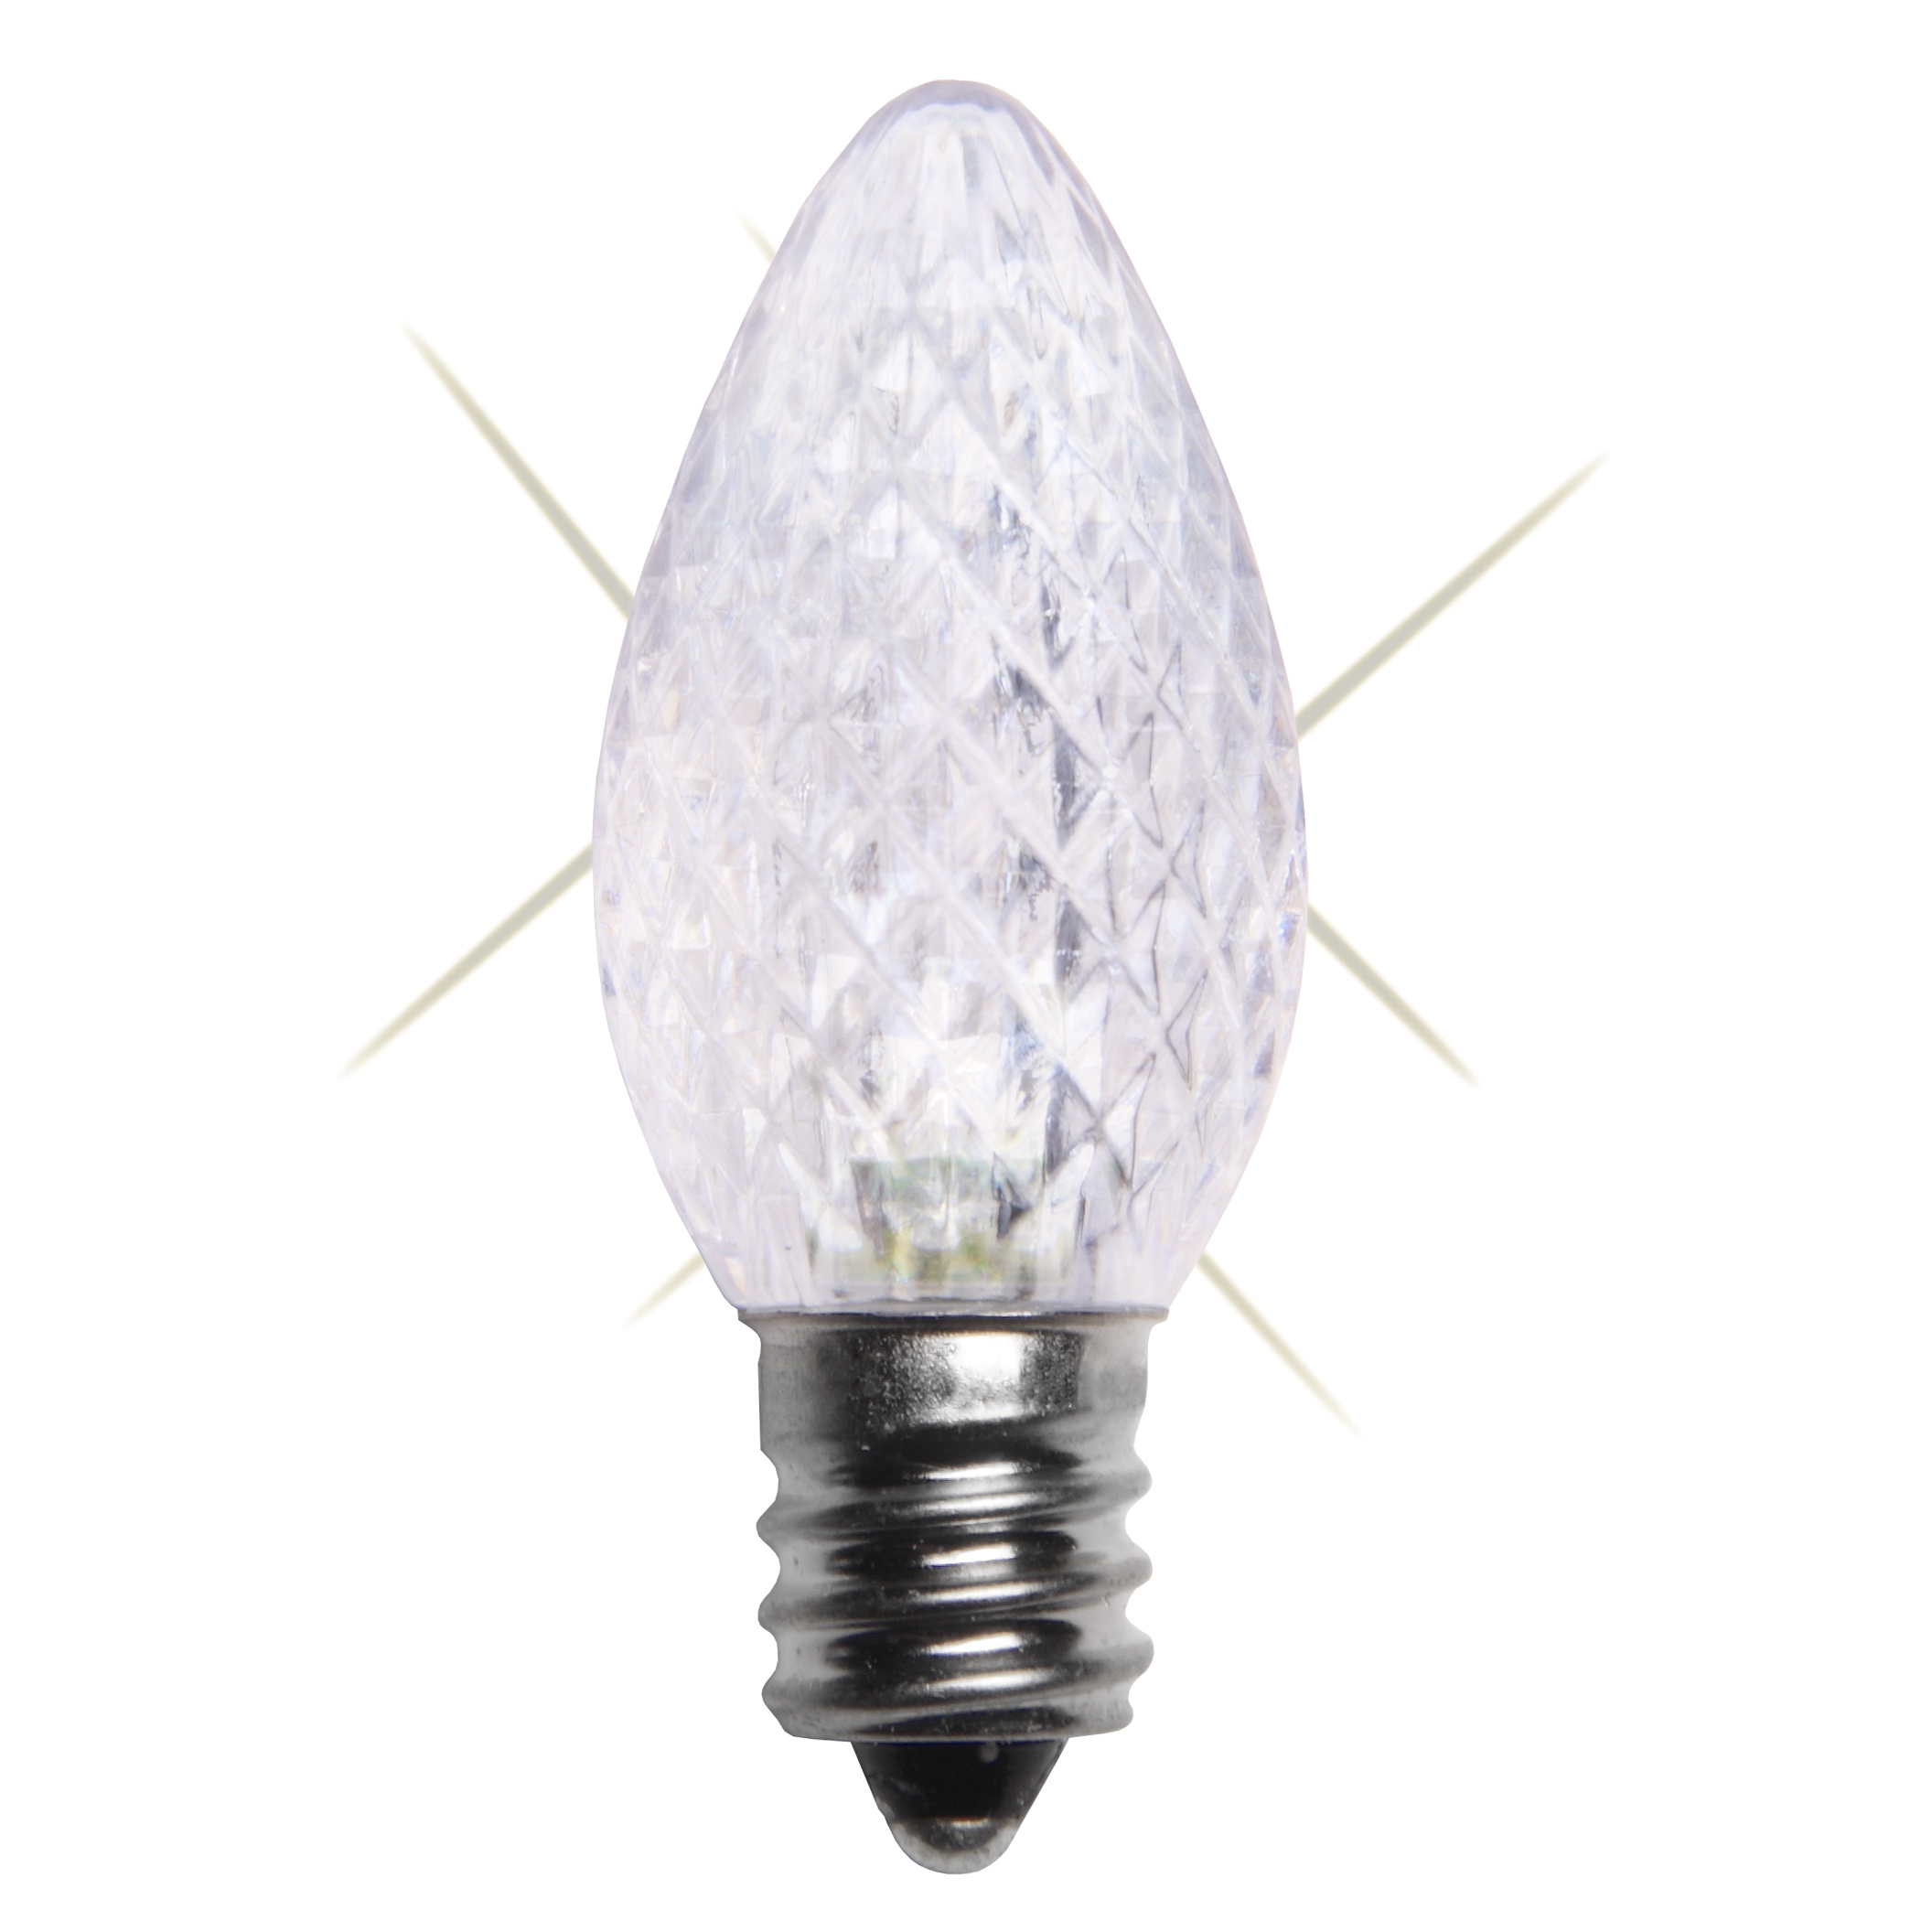 C7 Led Bulb >> C7 Twinkle Cool White Led Christmas Light Bulbs